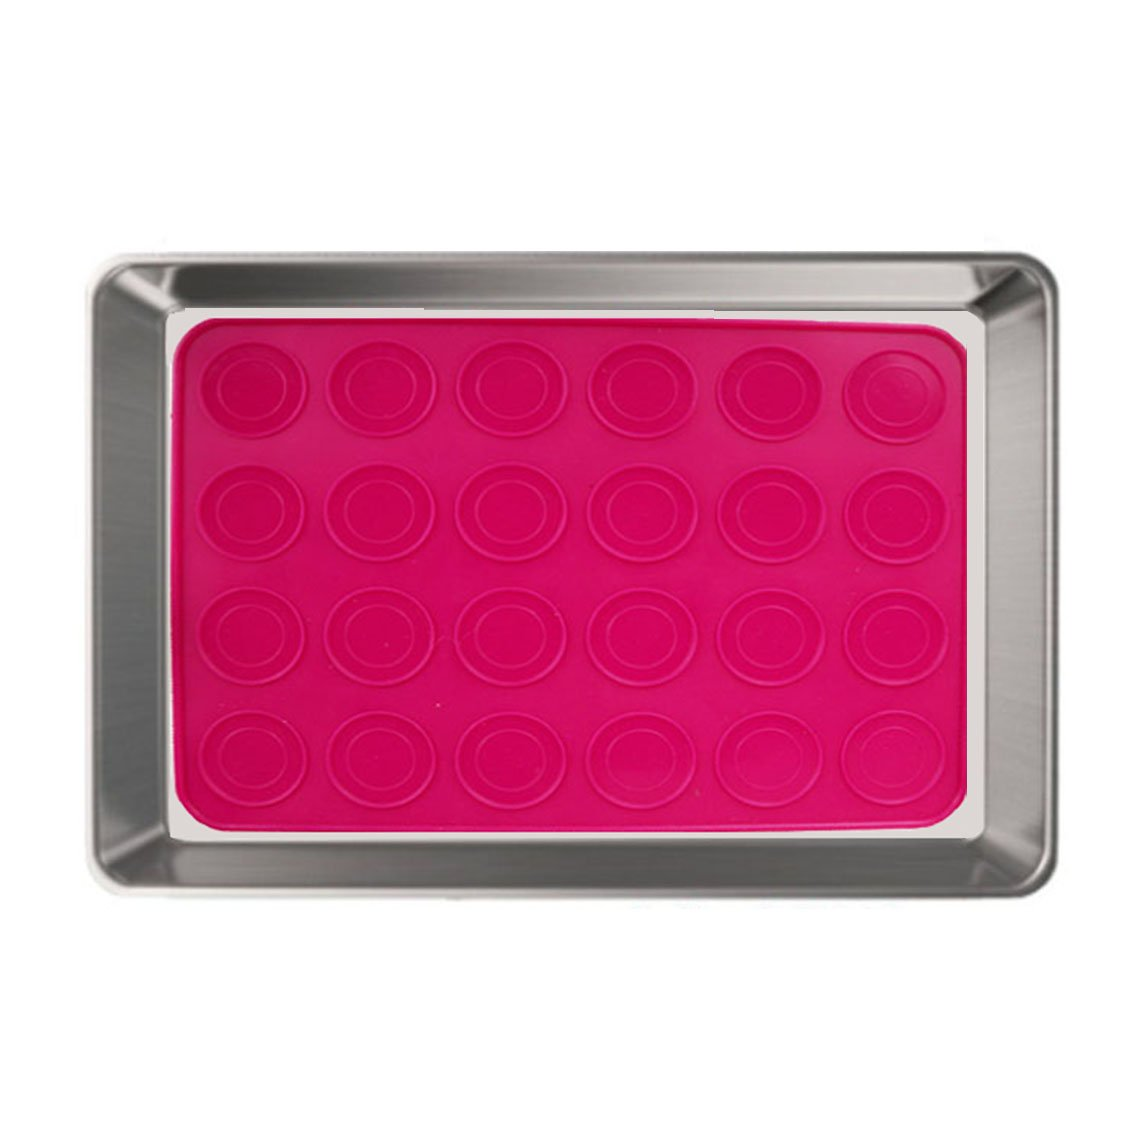 Neeshow Stainless Steel Toaster Oven Tray Pan and Silicone Baking Mat, Size 12''x10''x1'', Non Toxic & Healthy, Heavy Duty & Easy Clean, Dishwasher Safe